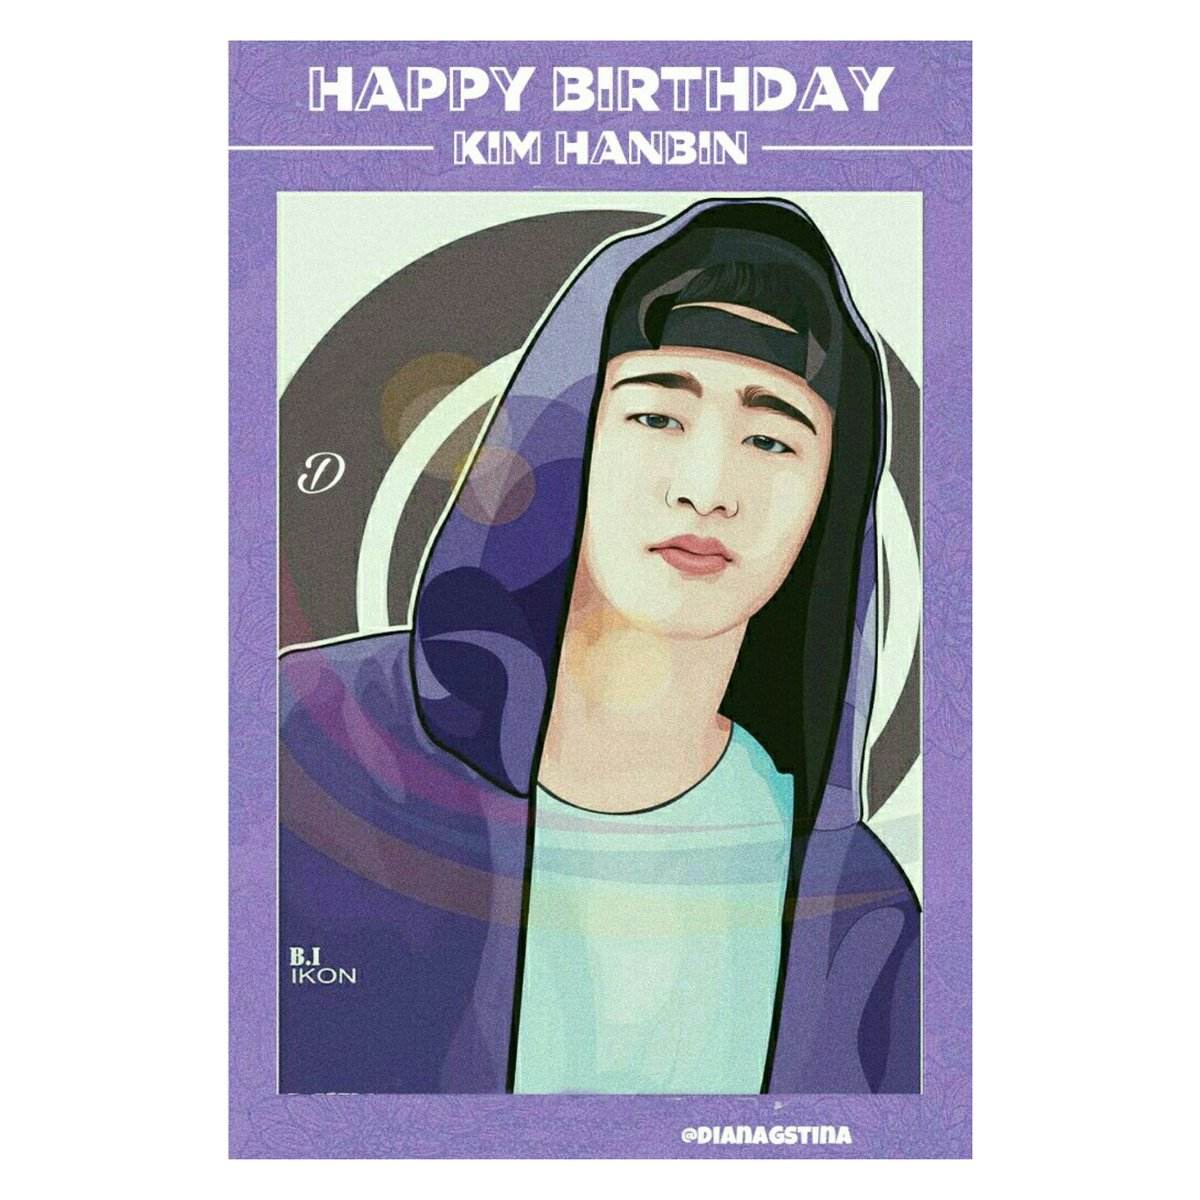 #KimHanbinDay #KimHanbinDay #KimHanbinDay #KimHanbinDay happy 21years...